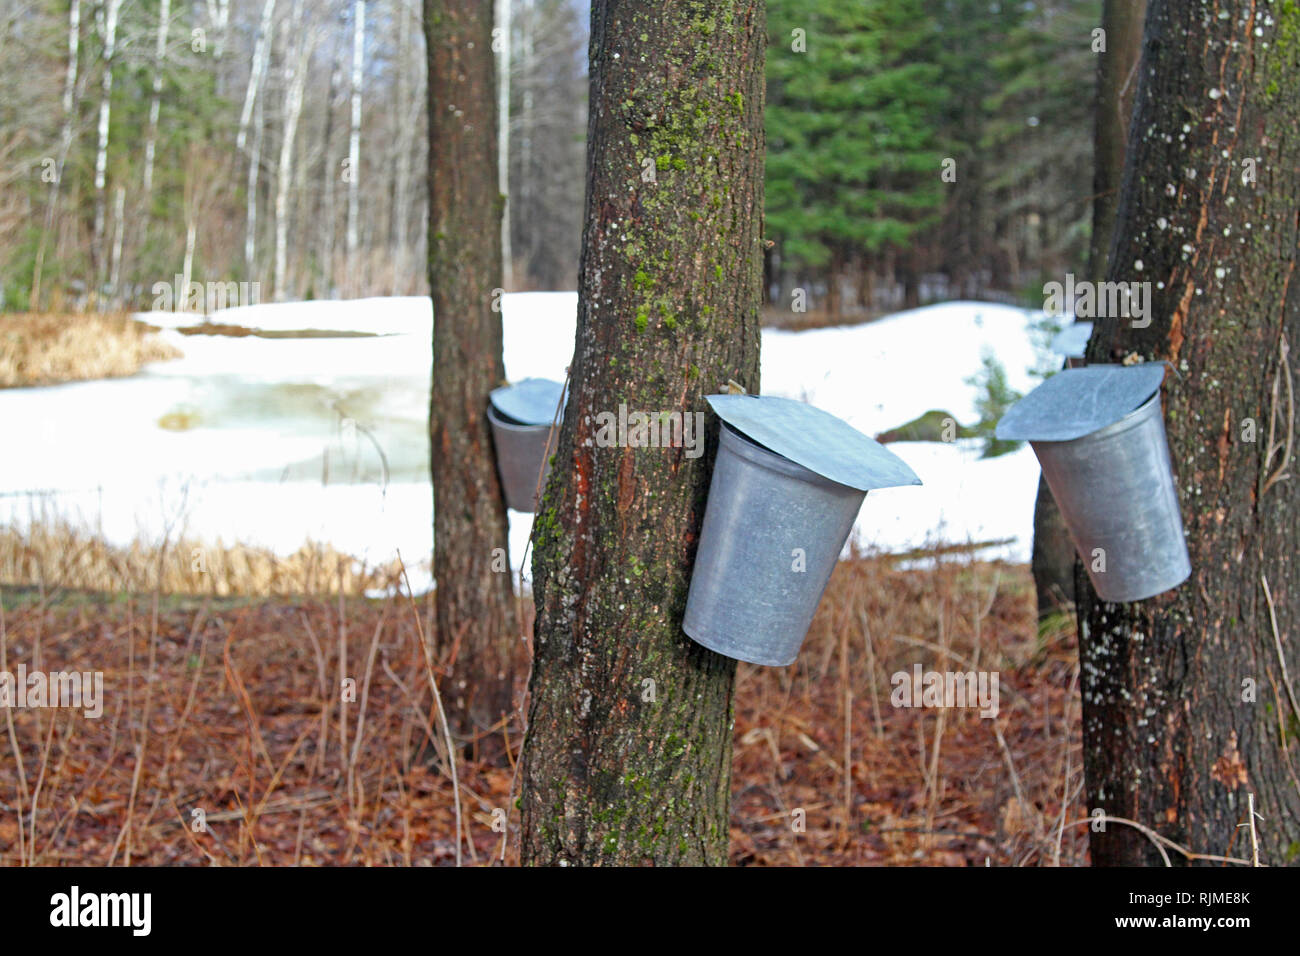 Closeup of aluminum buckets collecting sap for maple syrup production - Stock Image